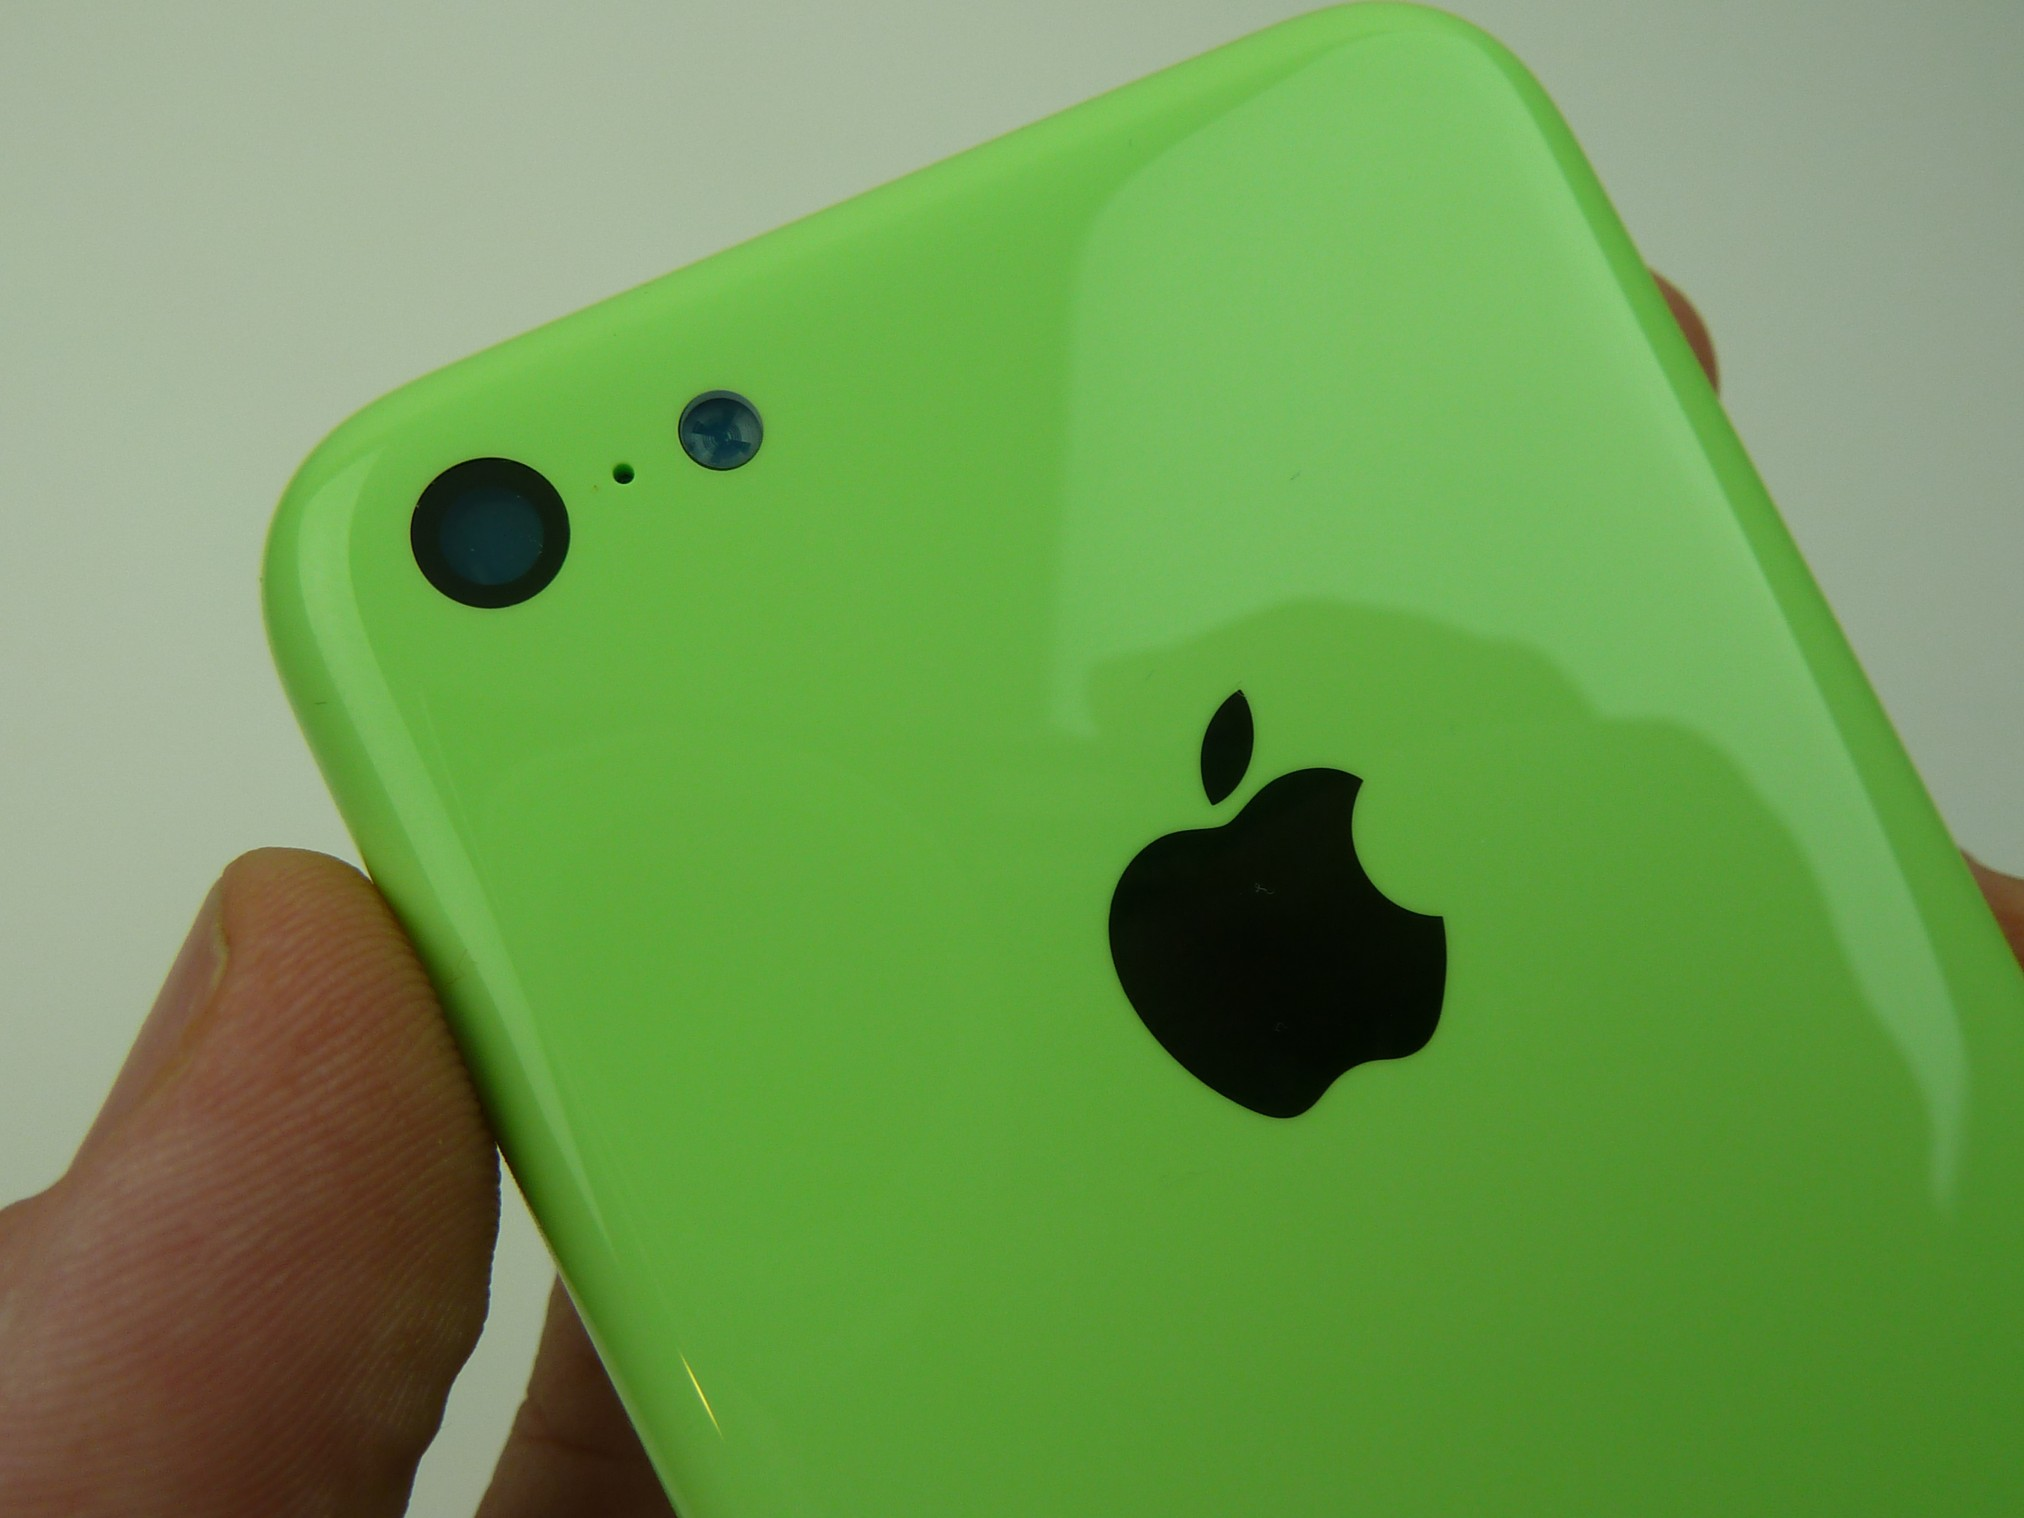 Gigaom | Leaked images show a lime green Apple iPhone 5C